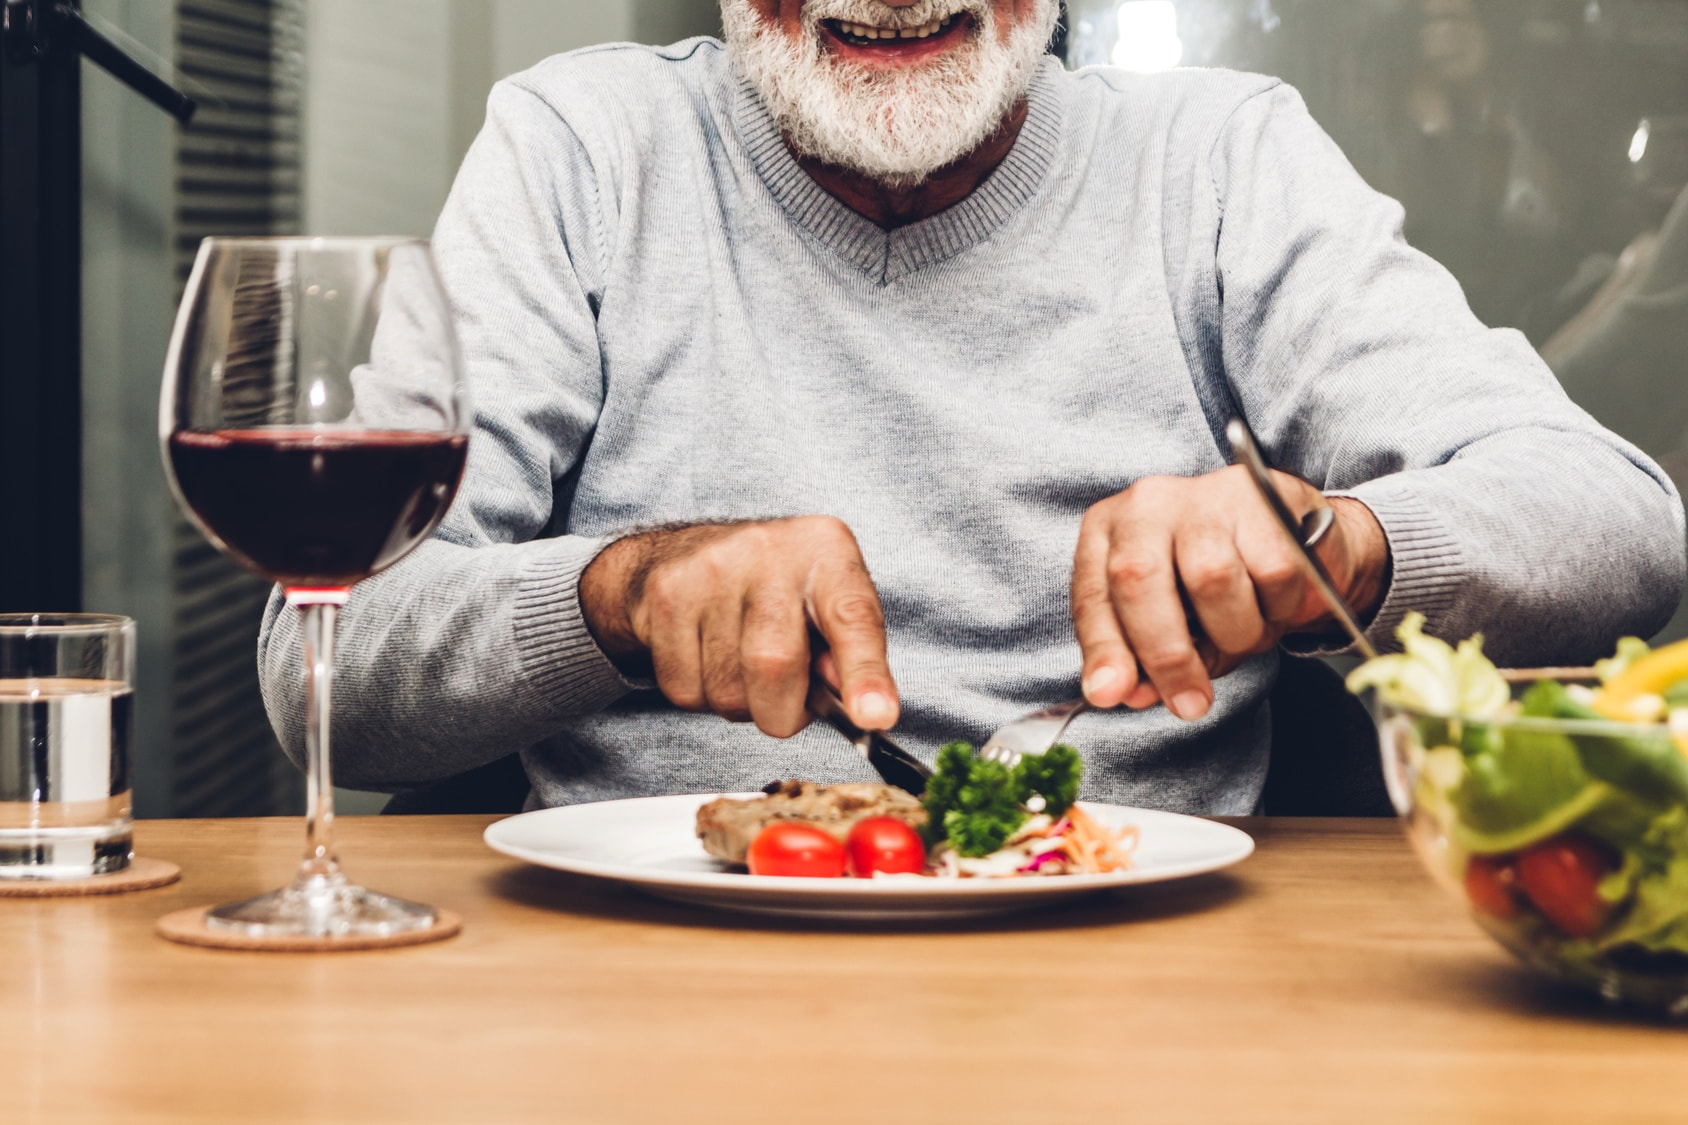 Canada's new Food Guide: 7 tips on healthy eating habits for seniors